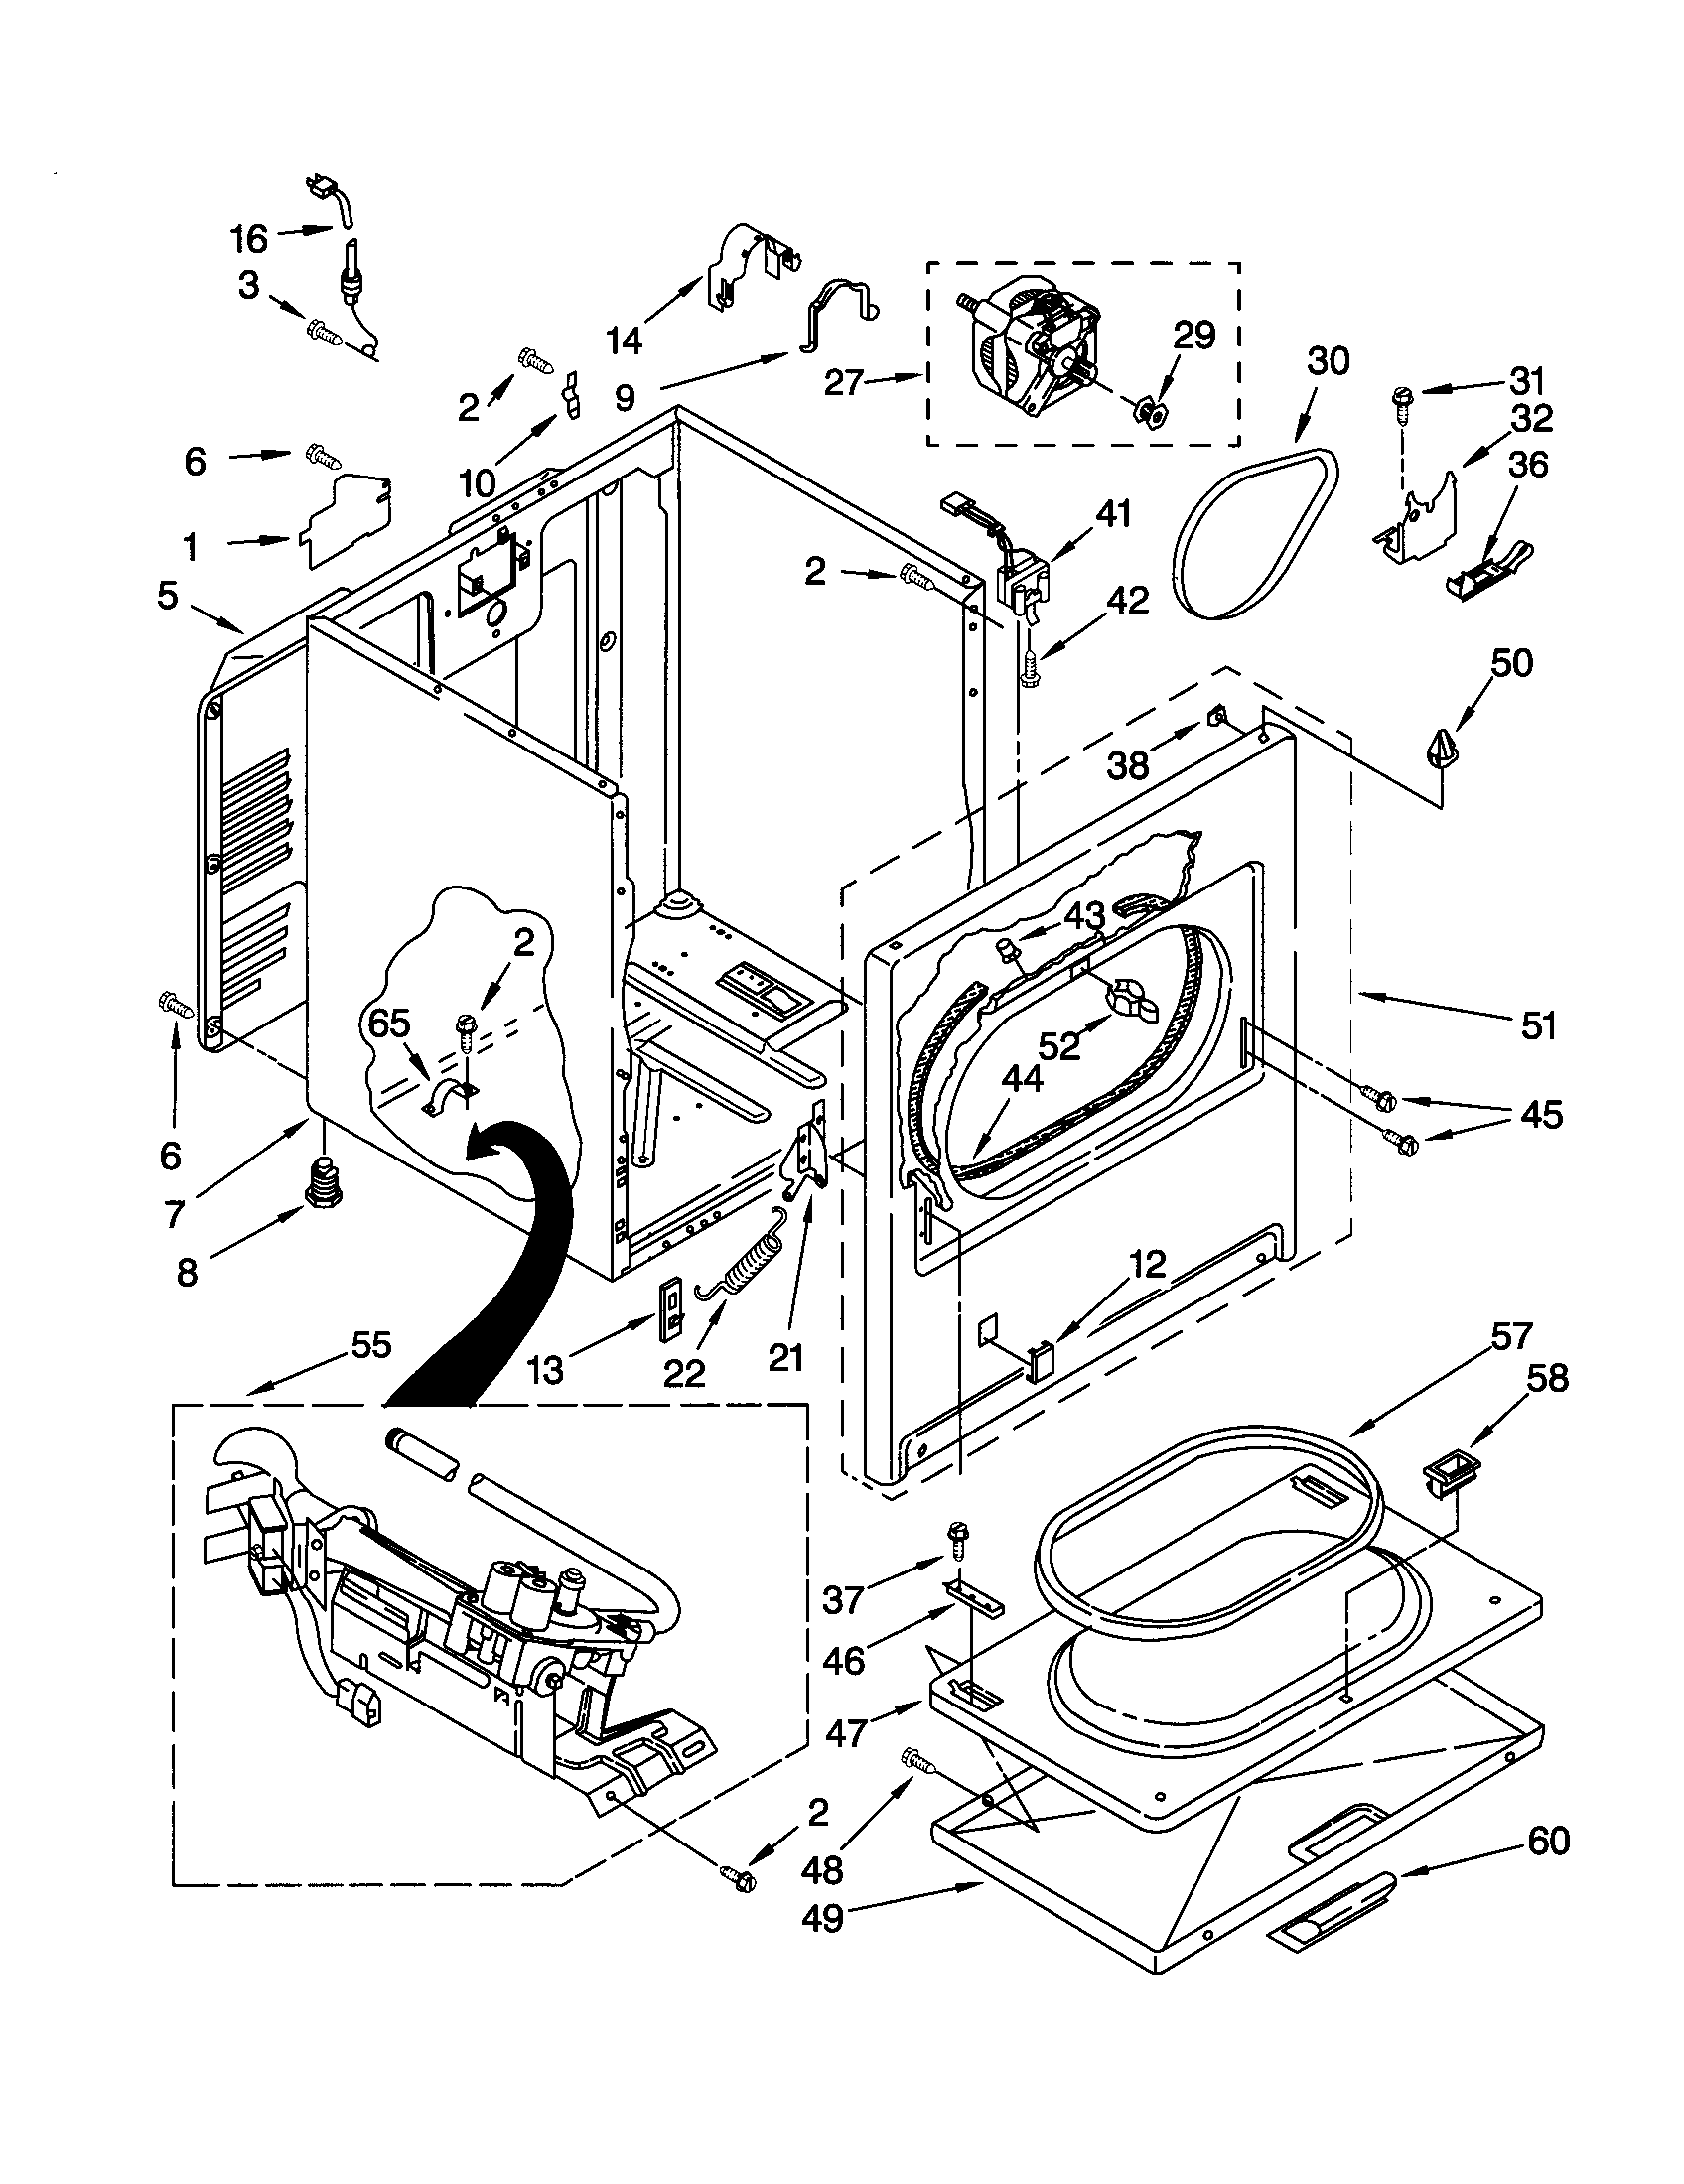 CABINET Diagram & Parts List for Model 11072602100 Kenmore